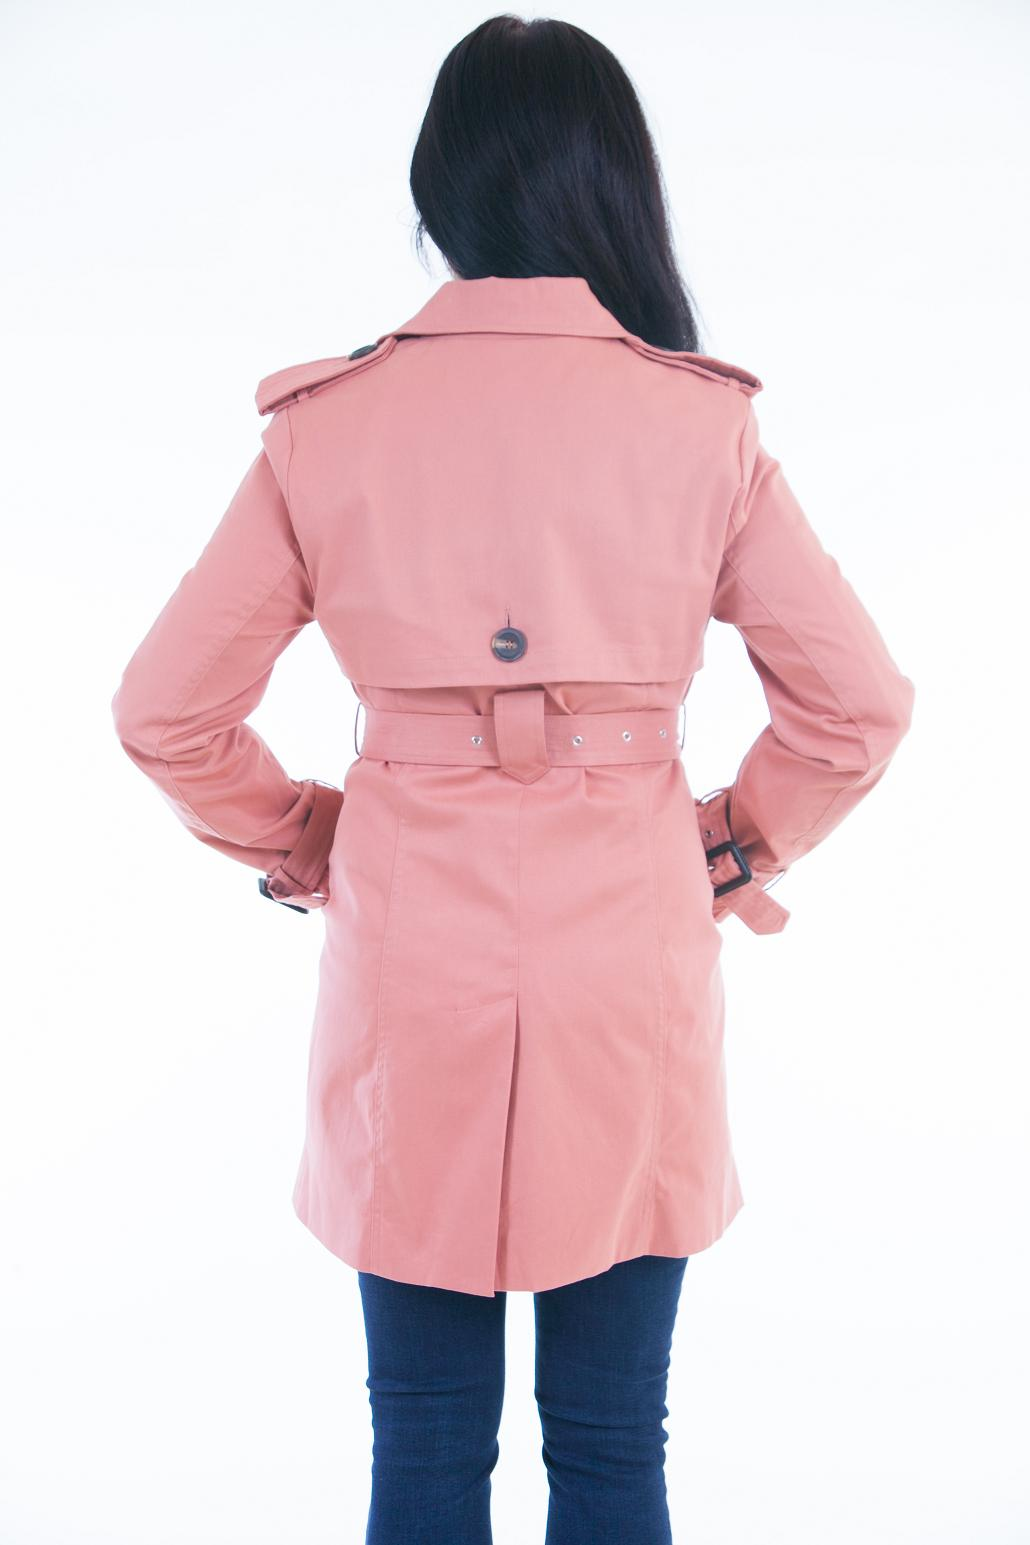 140c7d6633d Lee Cobb Belted Trench Coat Women Light weight Trench coat Belted ...